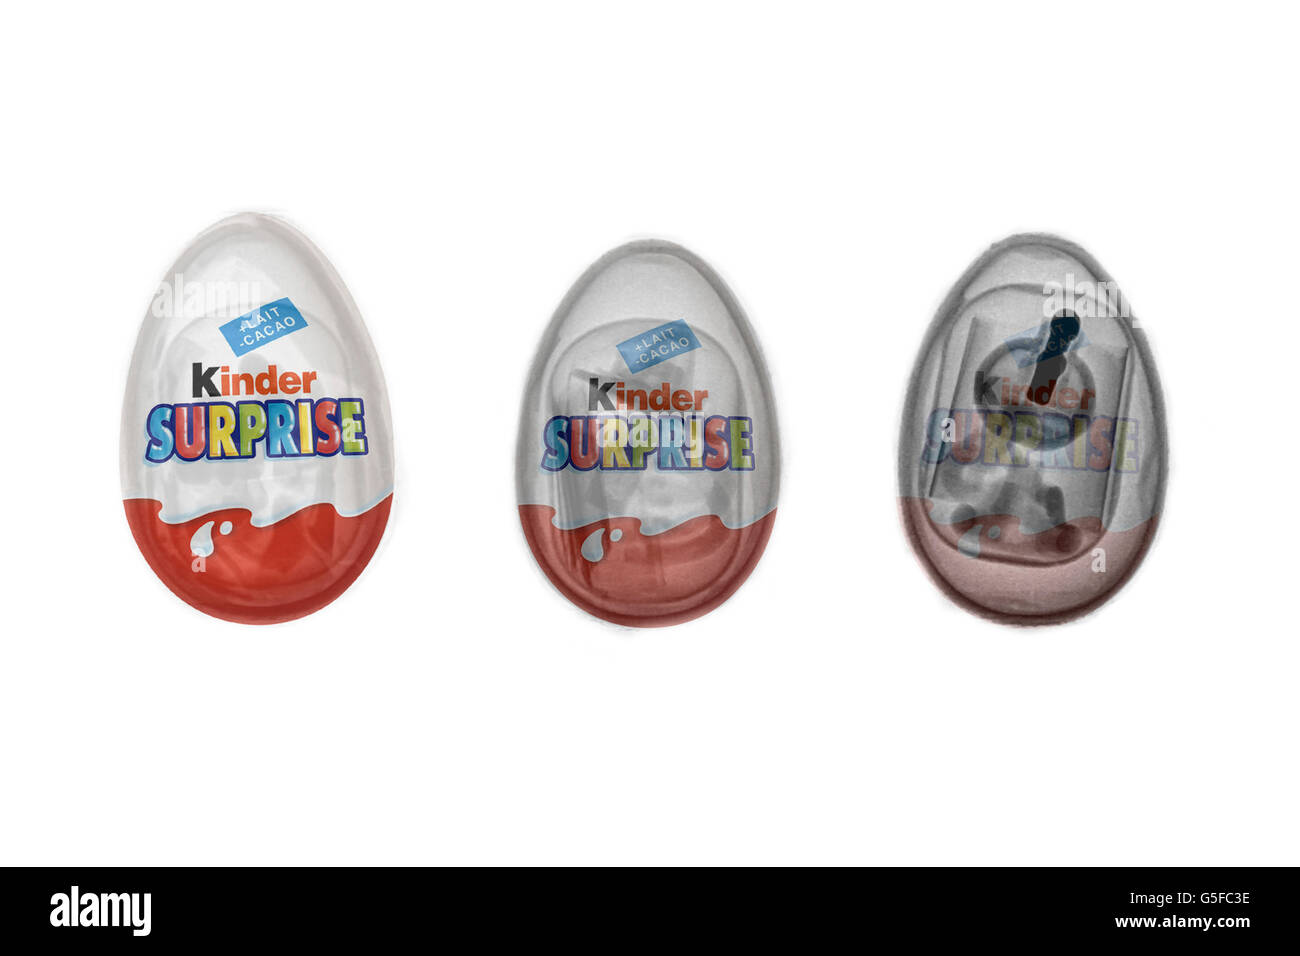 Kinder surprise chocolate egg unde3r x-ray - Stock Image